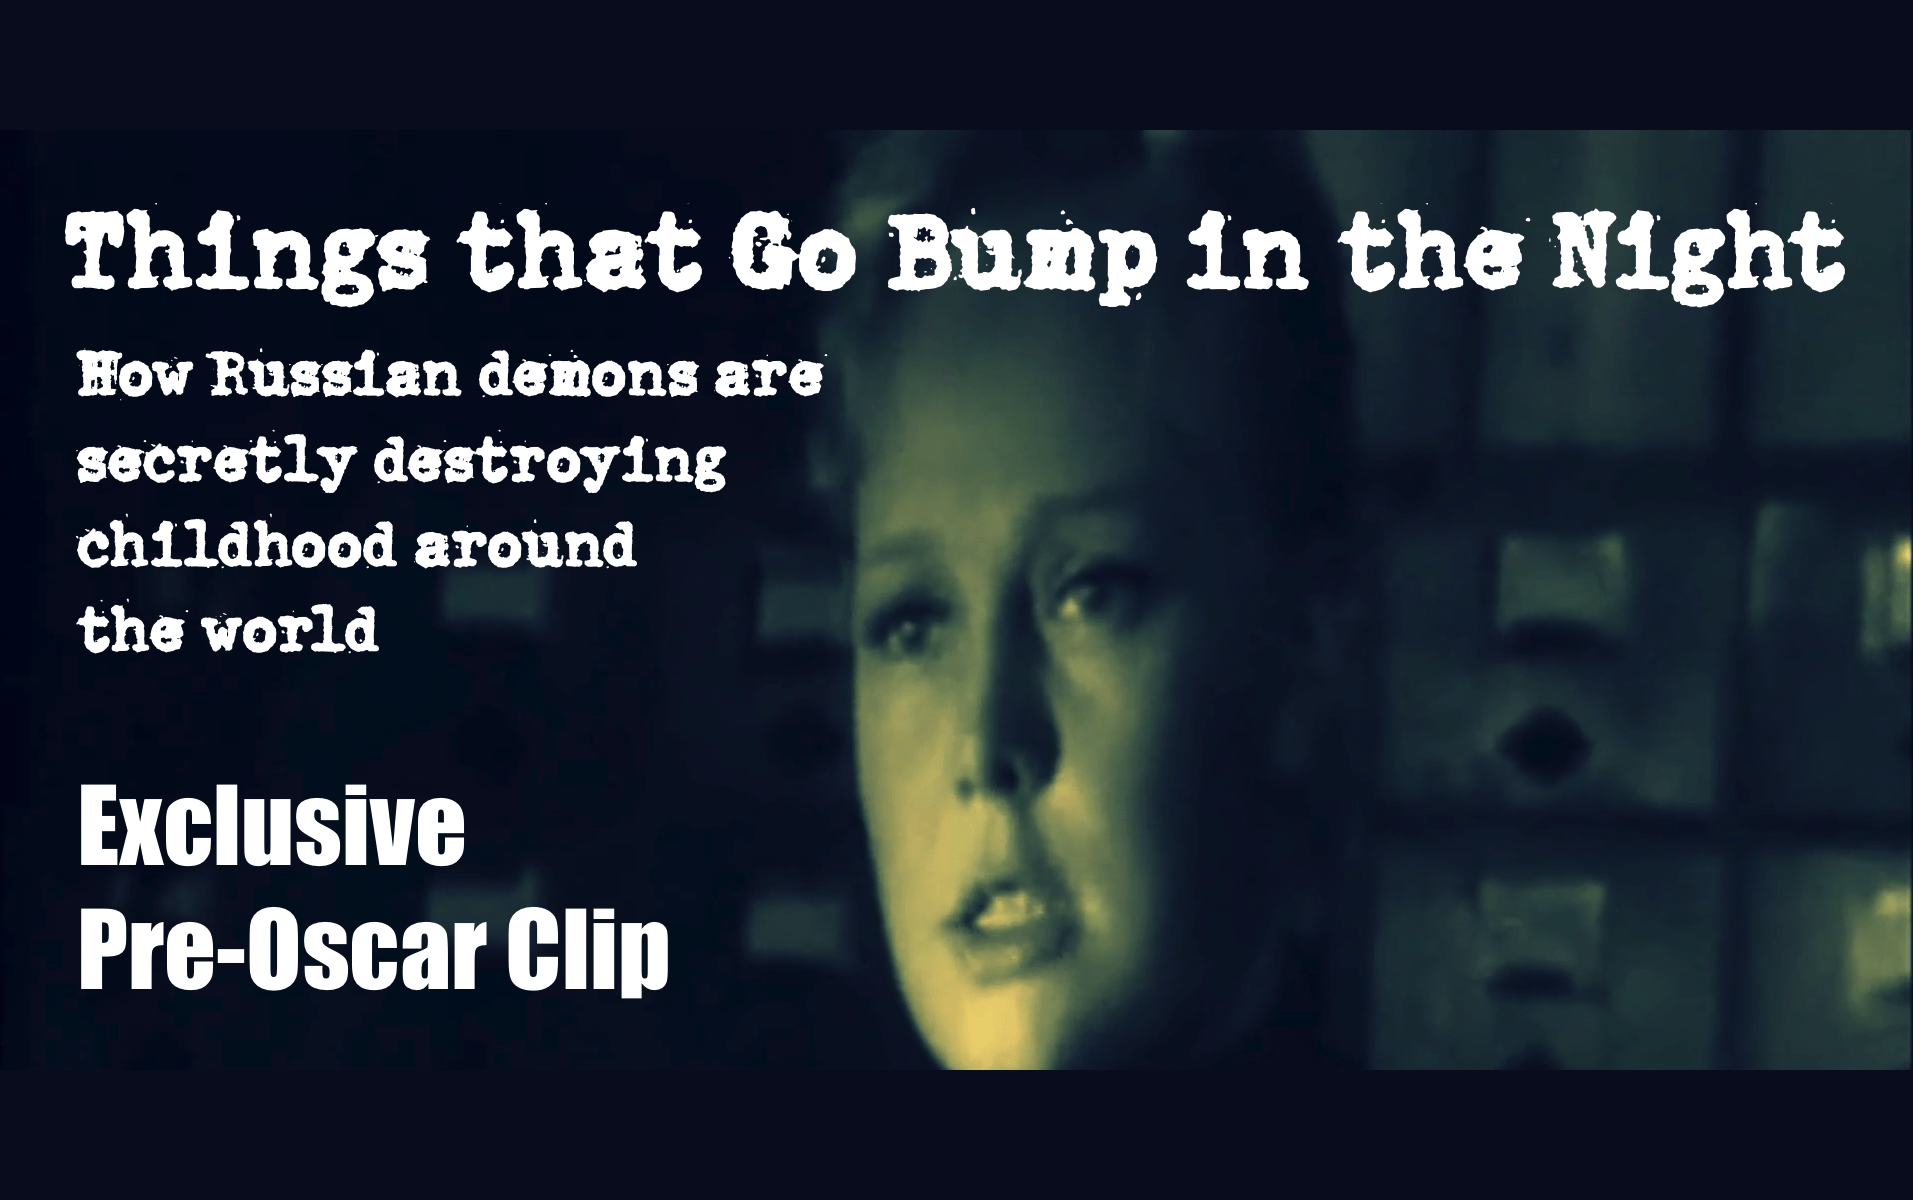 Exclusive Pre-Oscars Clip from Things that Go Bump in the Night